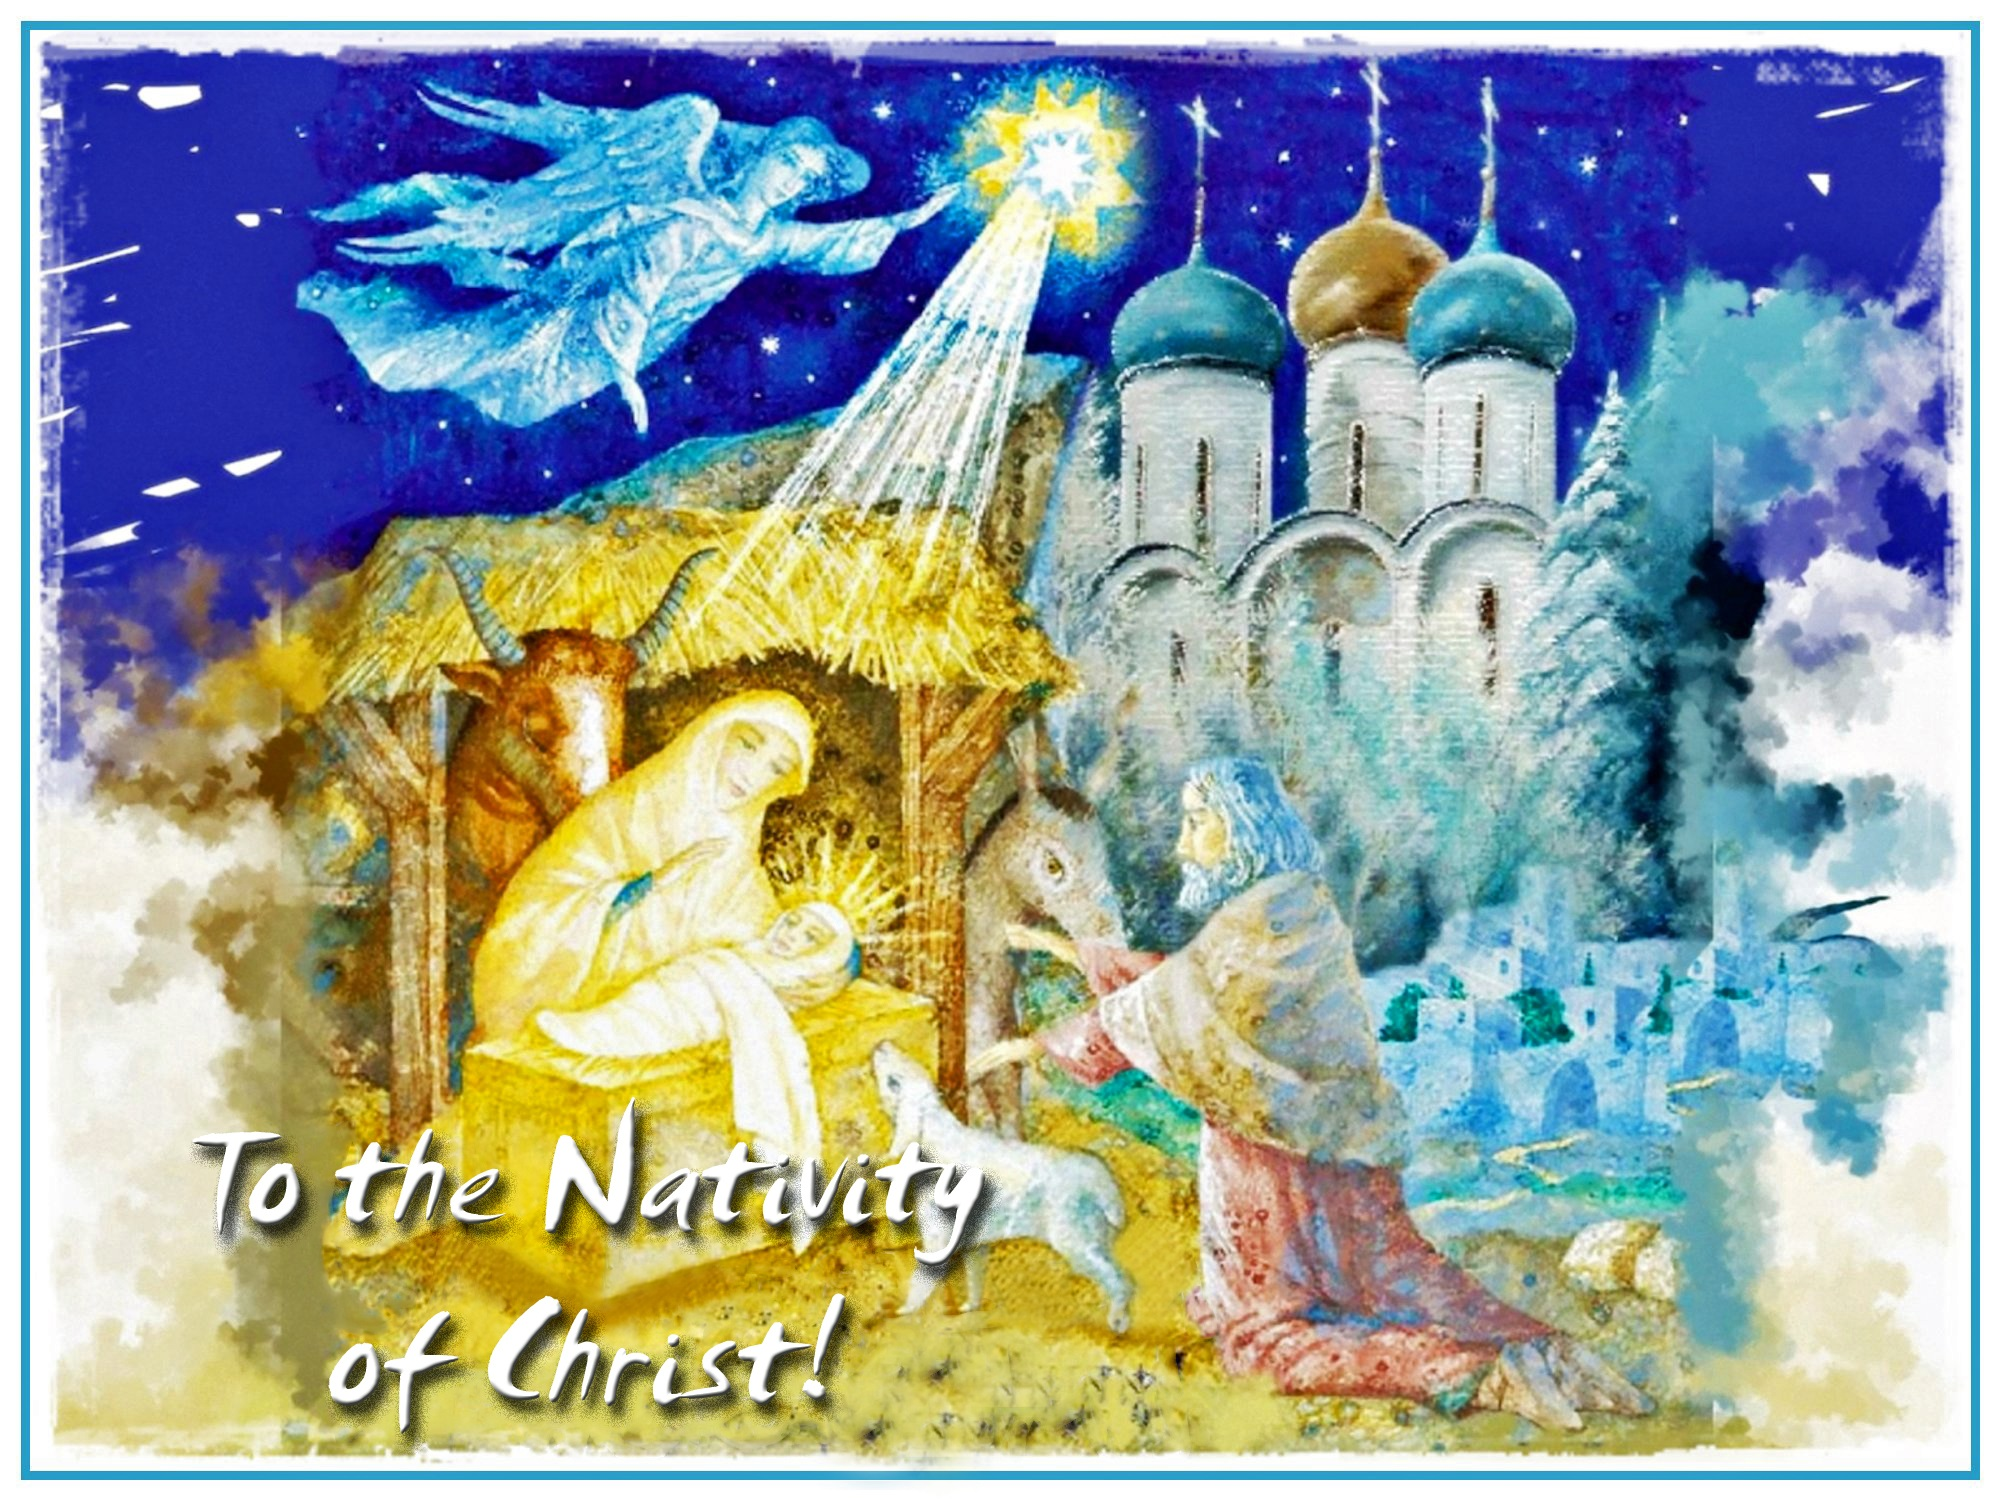 00 Vitaly Podvitsky. To the Nativity of Christ! 2015